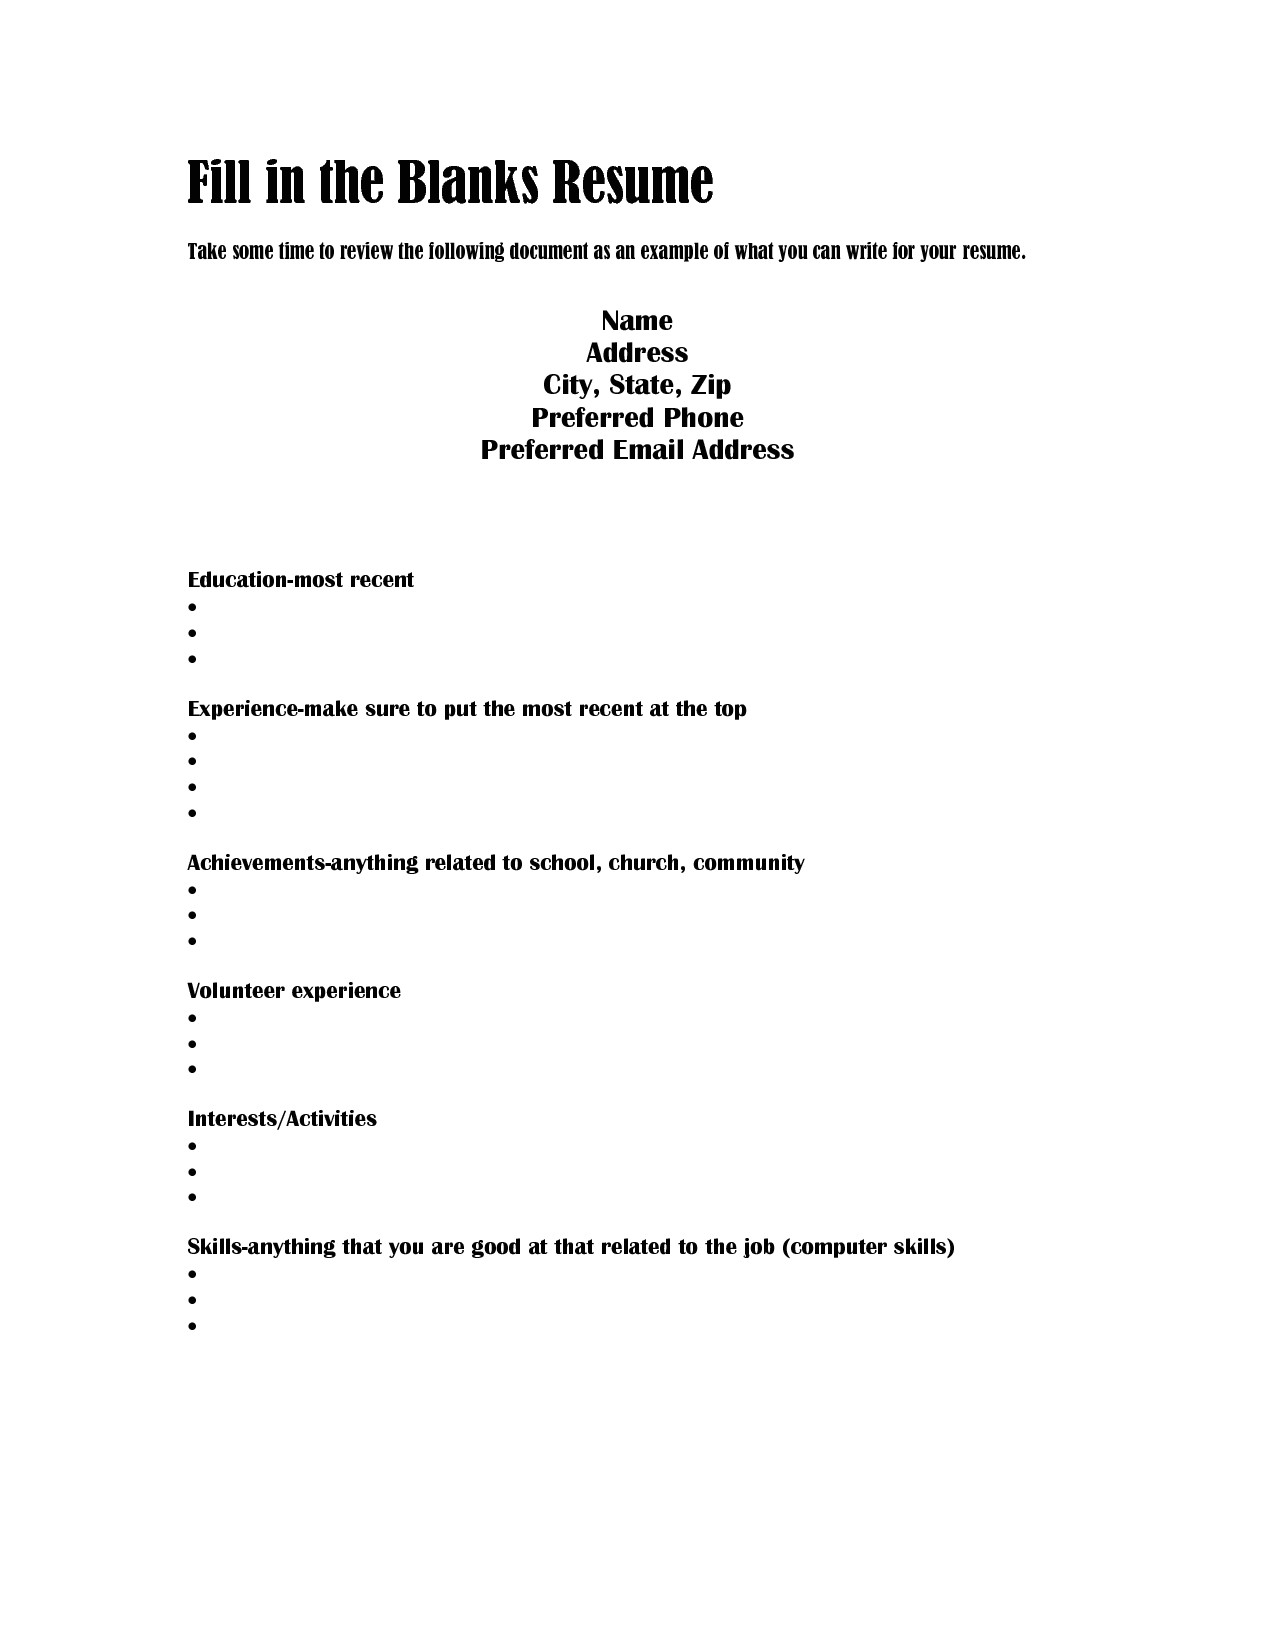 Blank Resume Template to Fill In Best Photos Of Job Resume Fill Blank Blank Fill Job